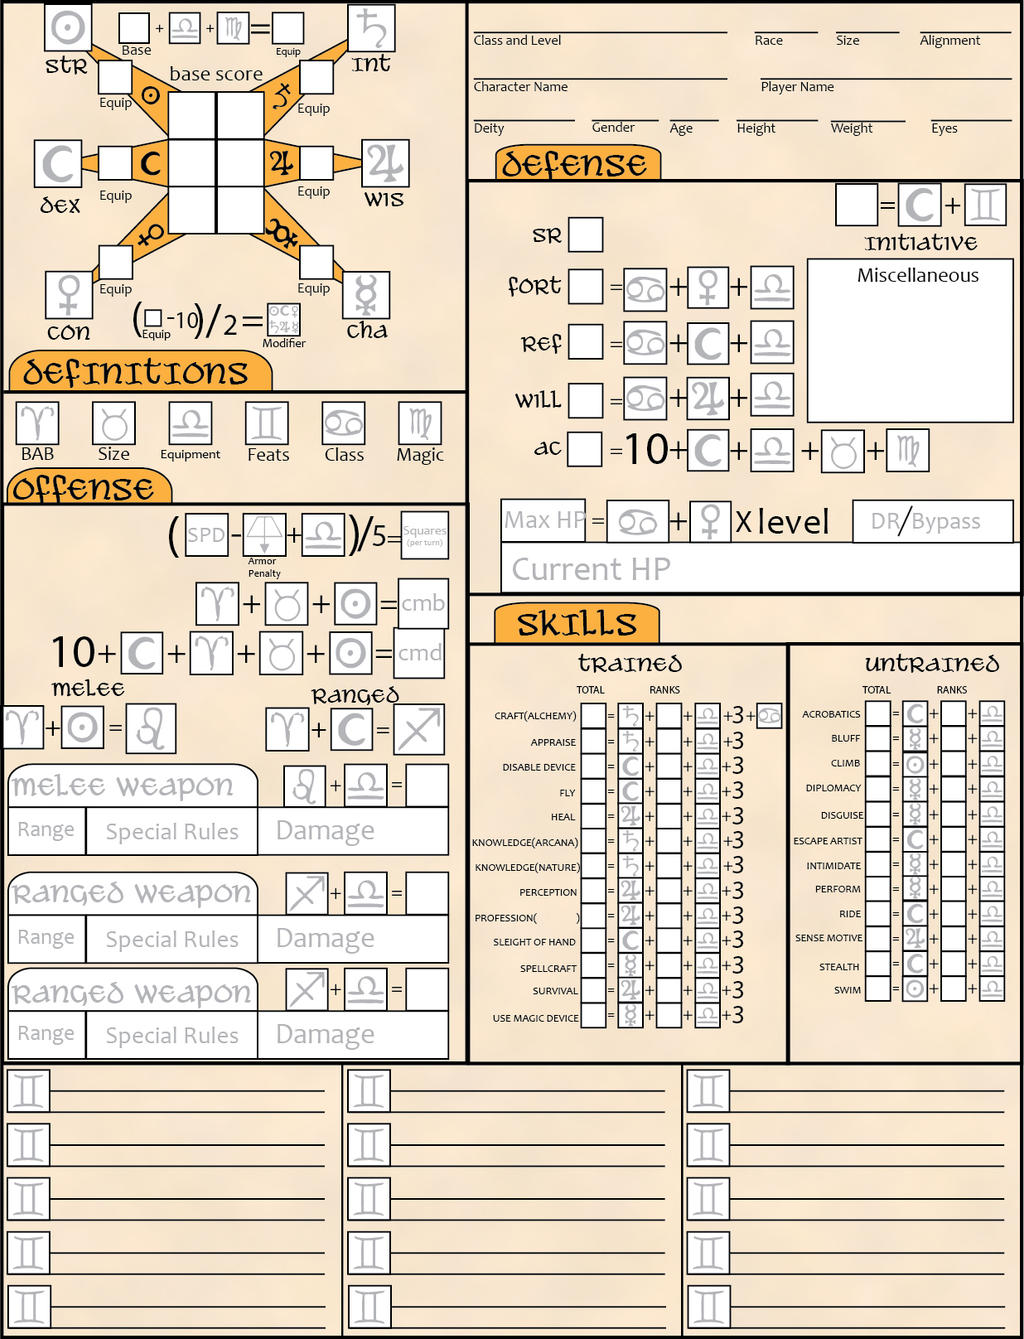 Pathfinder character sheet - cafenews info